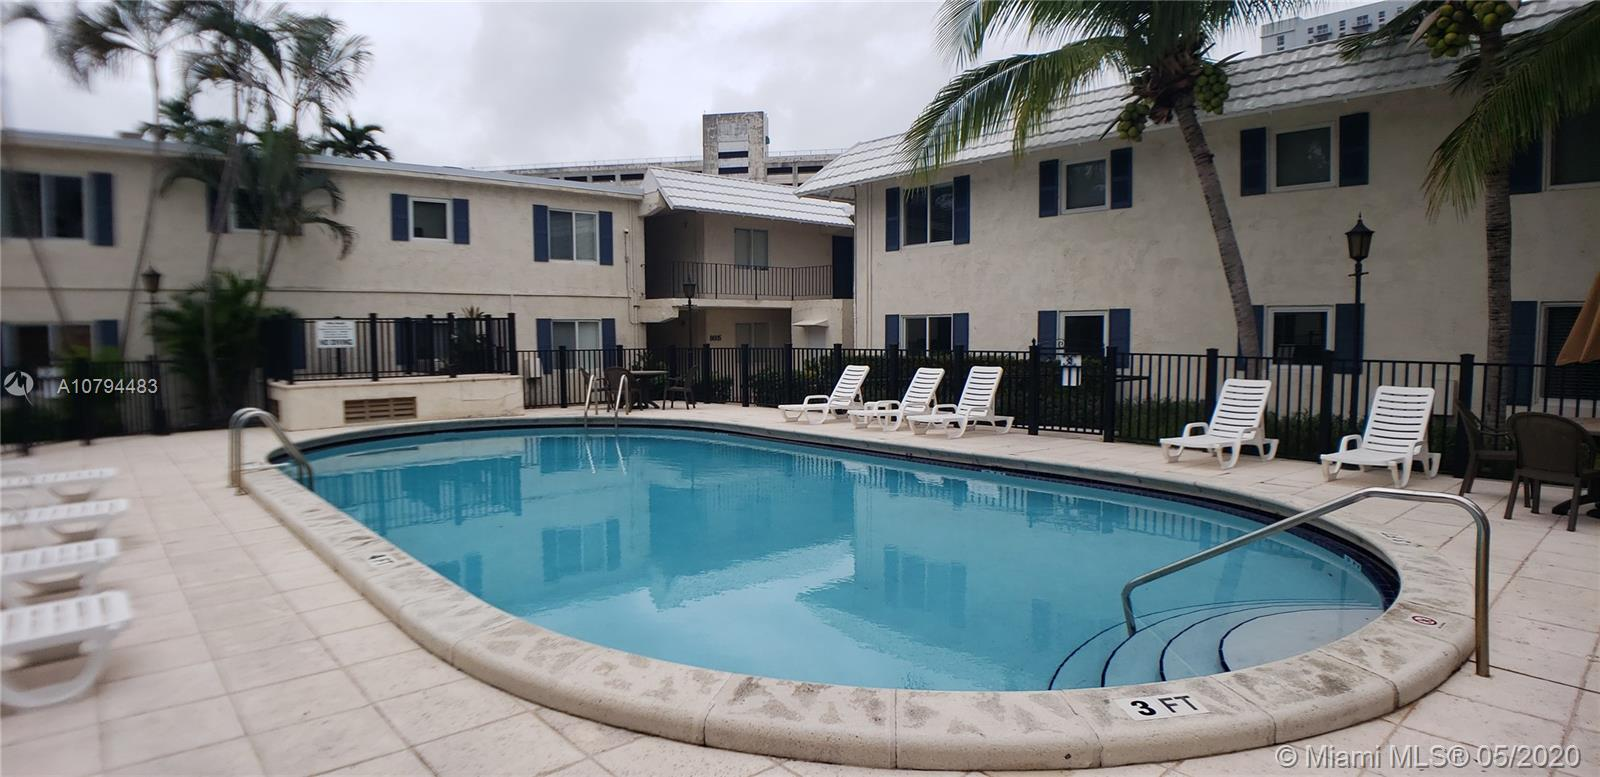 8607 SW 68th Ct #24 For Sale A10794483, FL